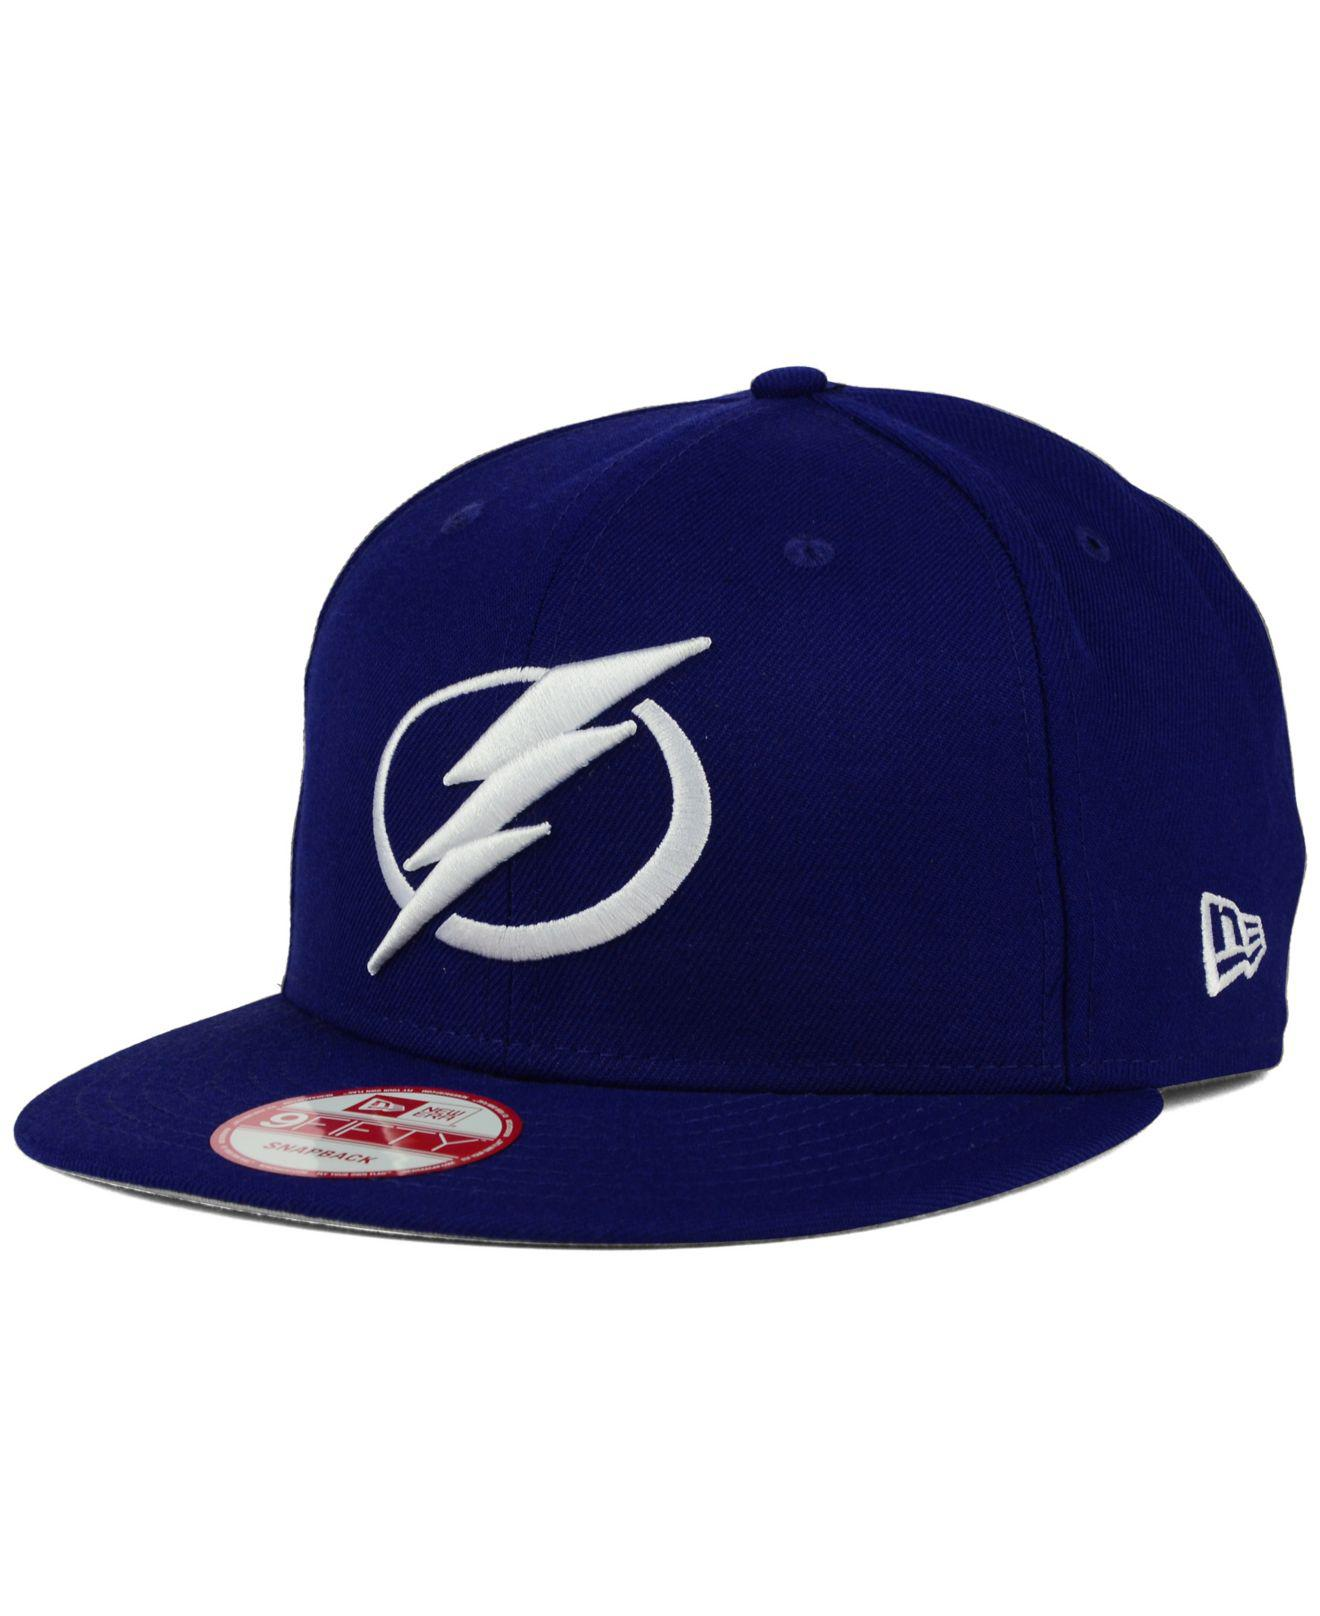 official photos a414d 64fee KTZ Tampa Bay Lightning All Day 9fifty Snapback Cap in Blue for Men ...